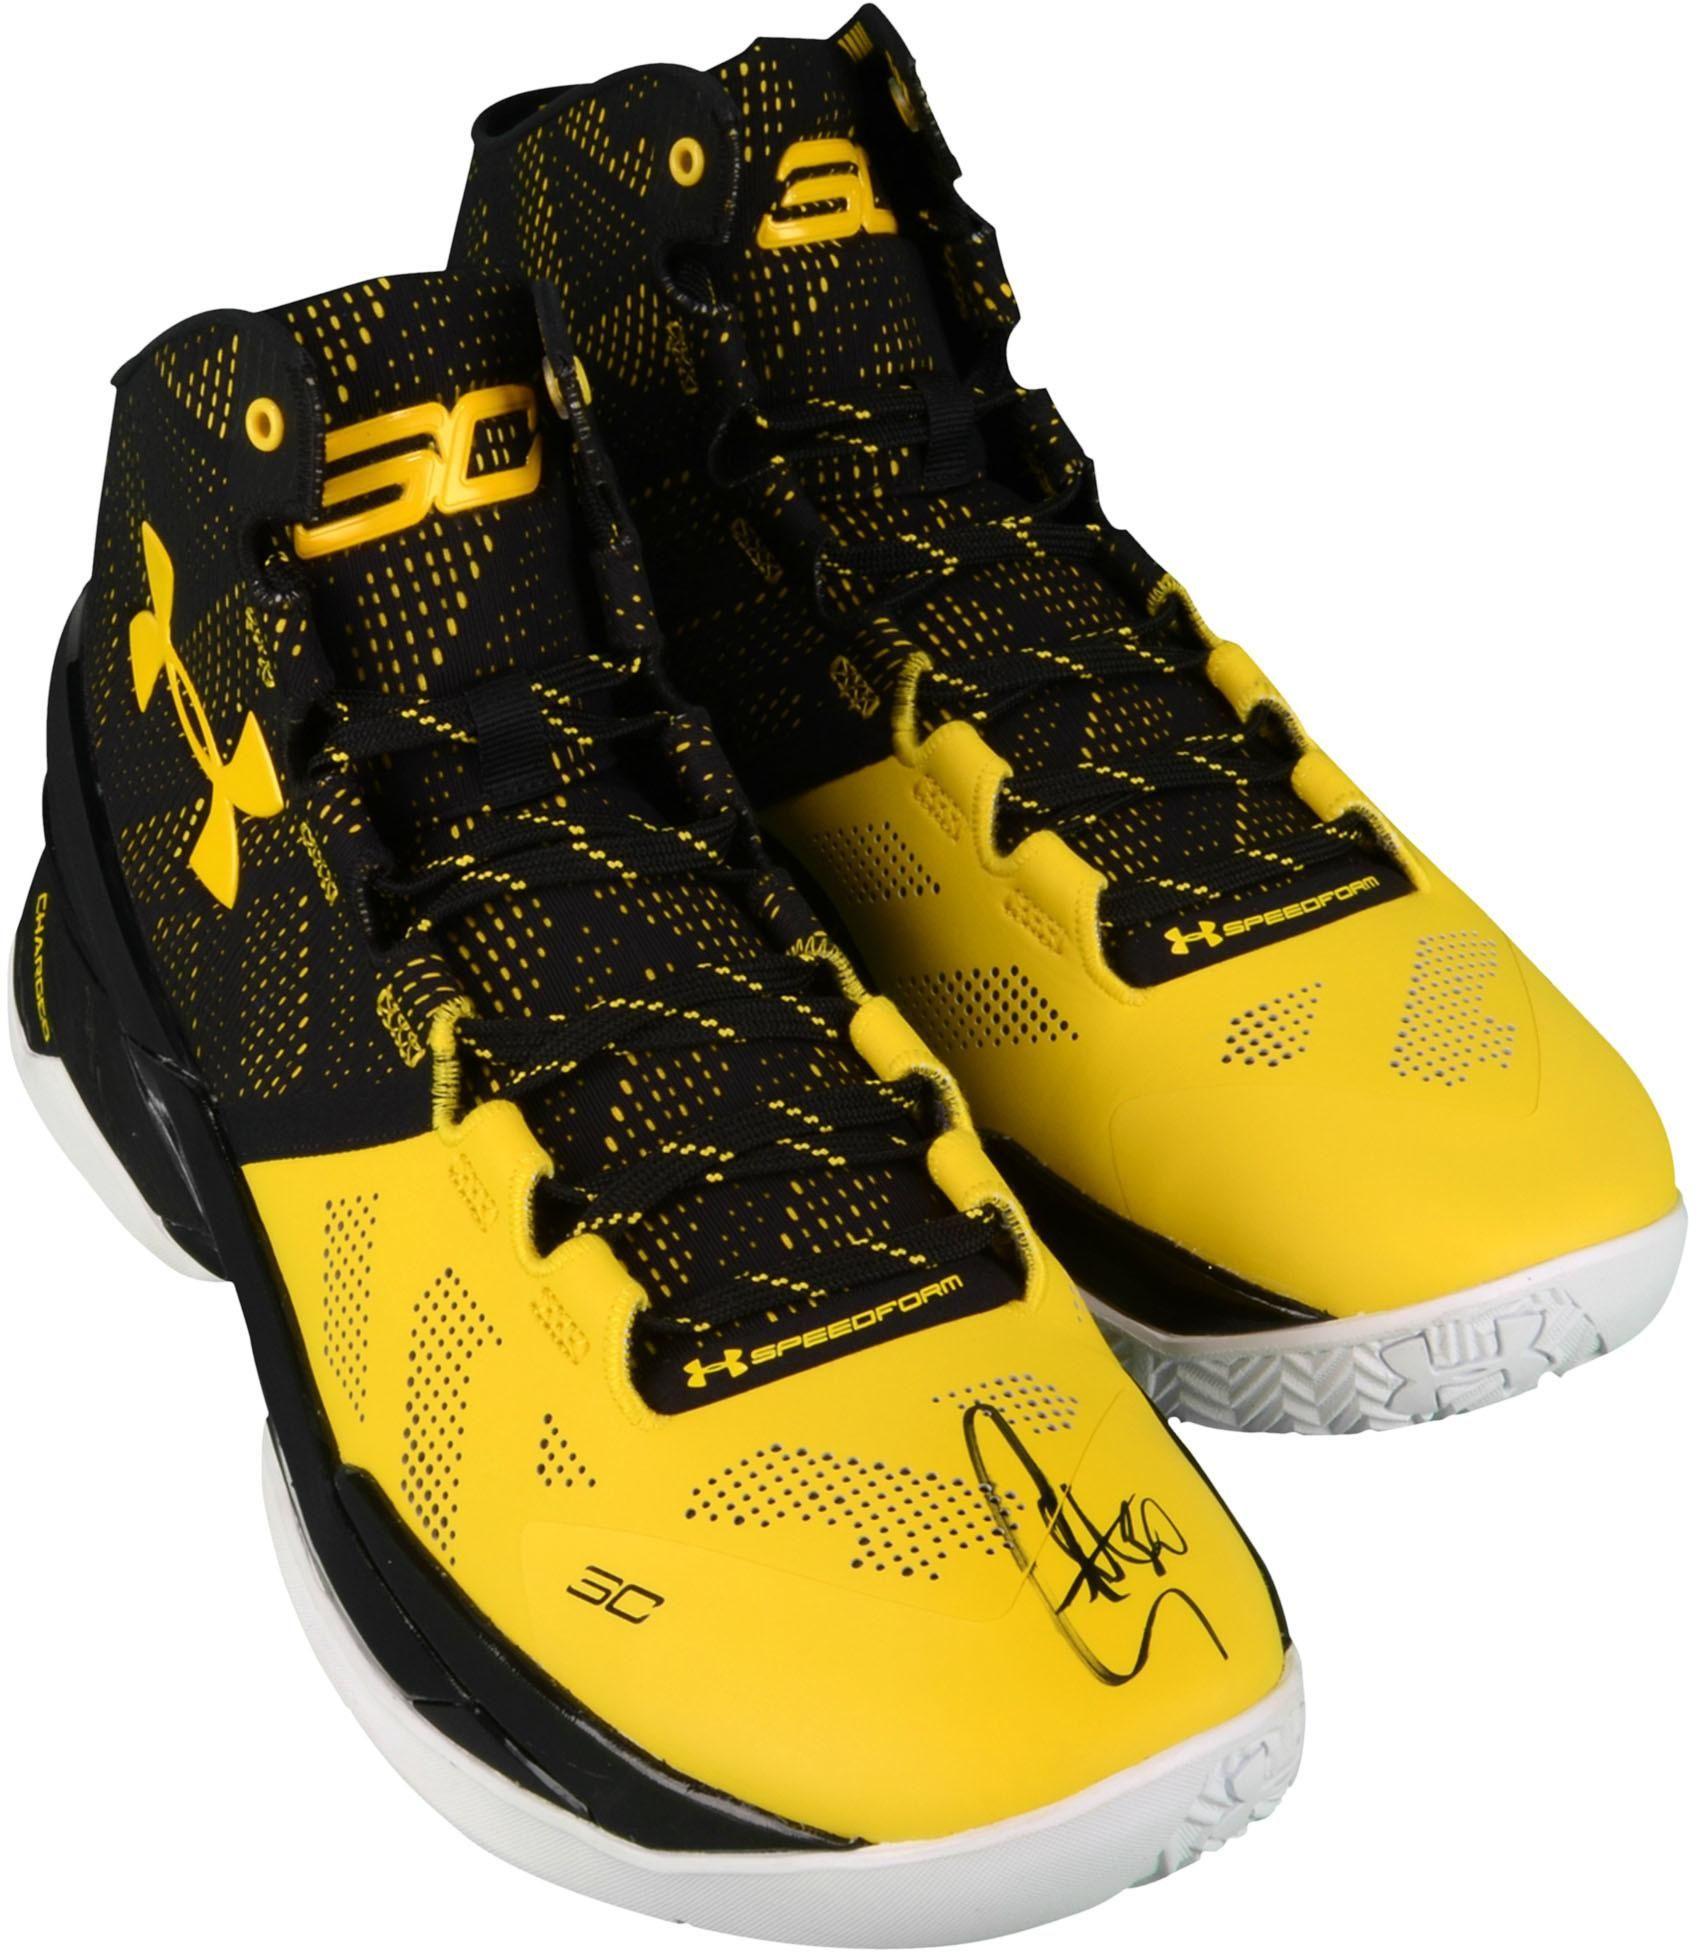 Stephen Curry Golden State Warriors Autographed Curry 2 Black and Yellow  Shoes  4ed5bff768